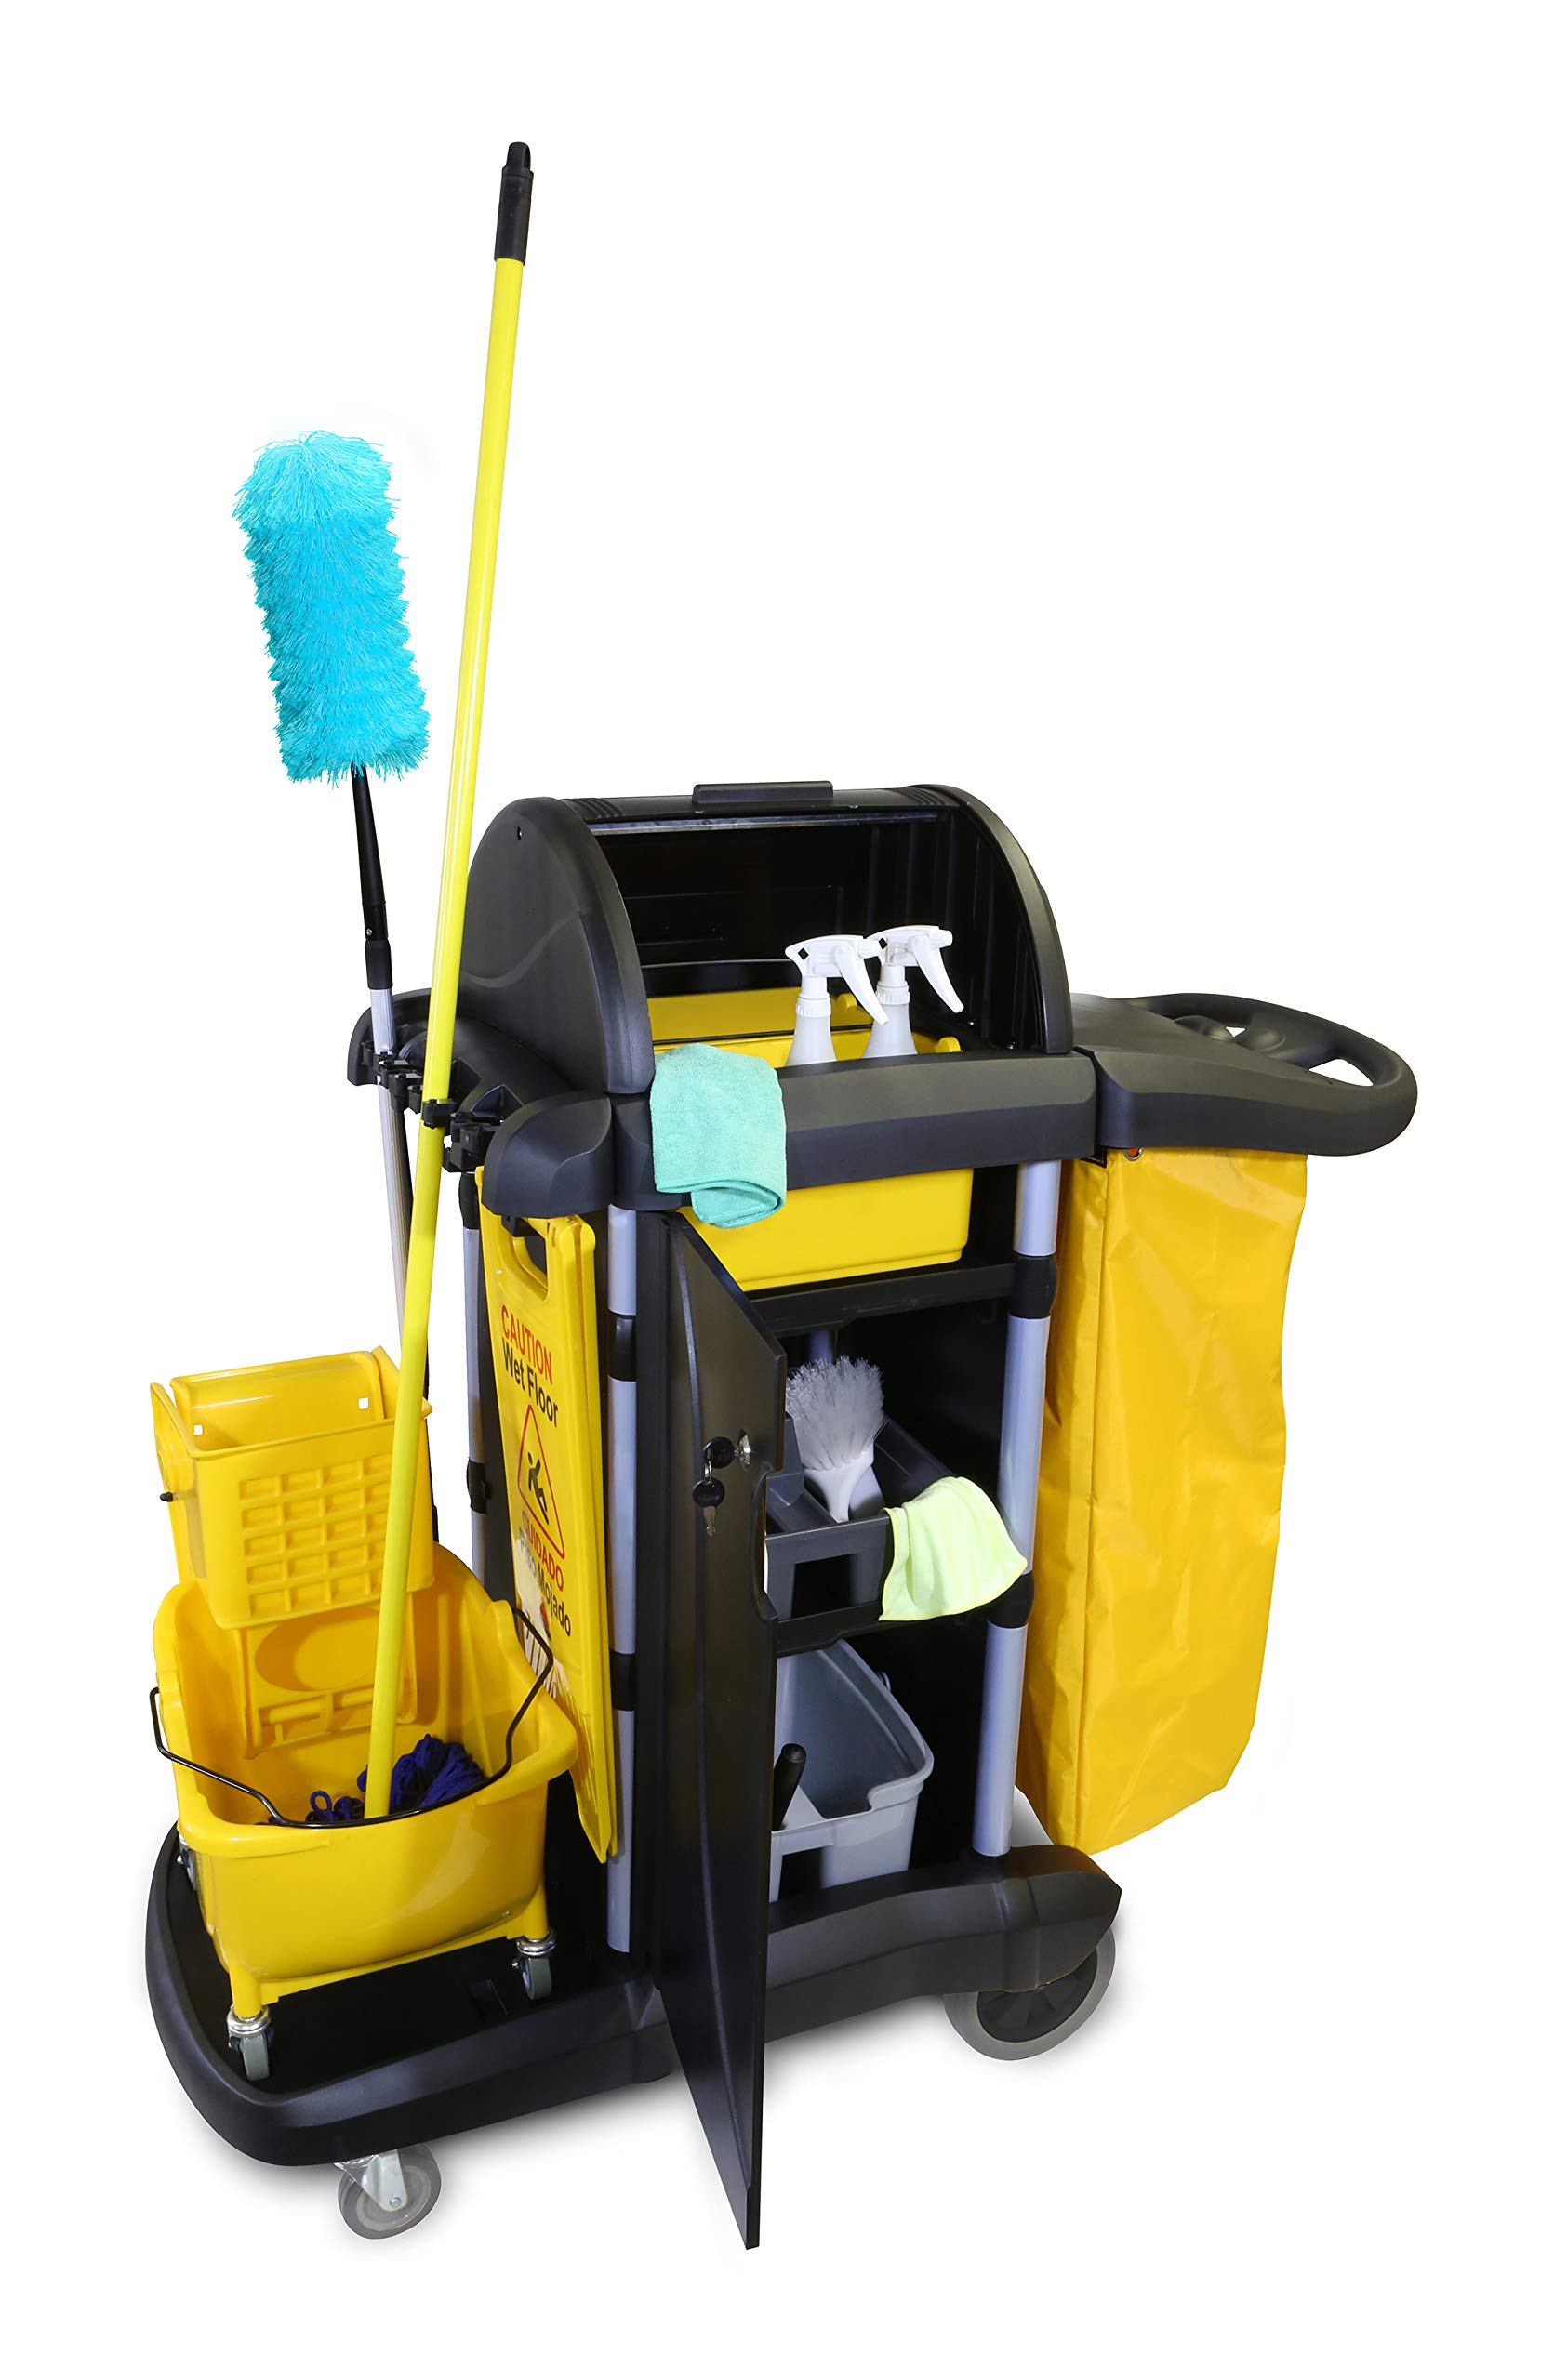 O'Cedar Commercial 96997 MaxiPlus Deluxe Janitor Cart (Pack of 1) by O-Cedar Commercial (Image #3)